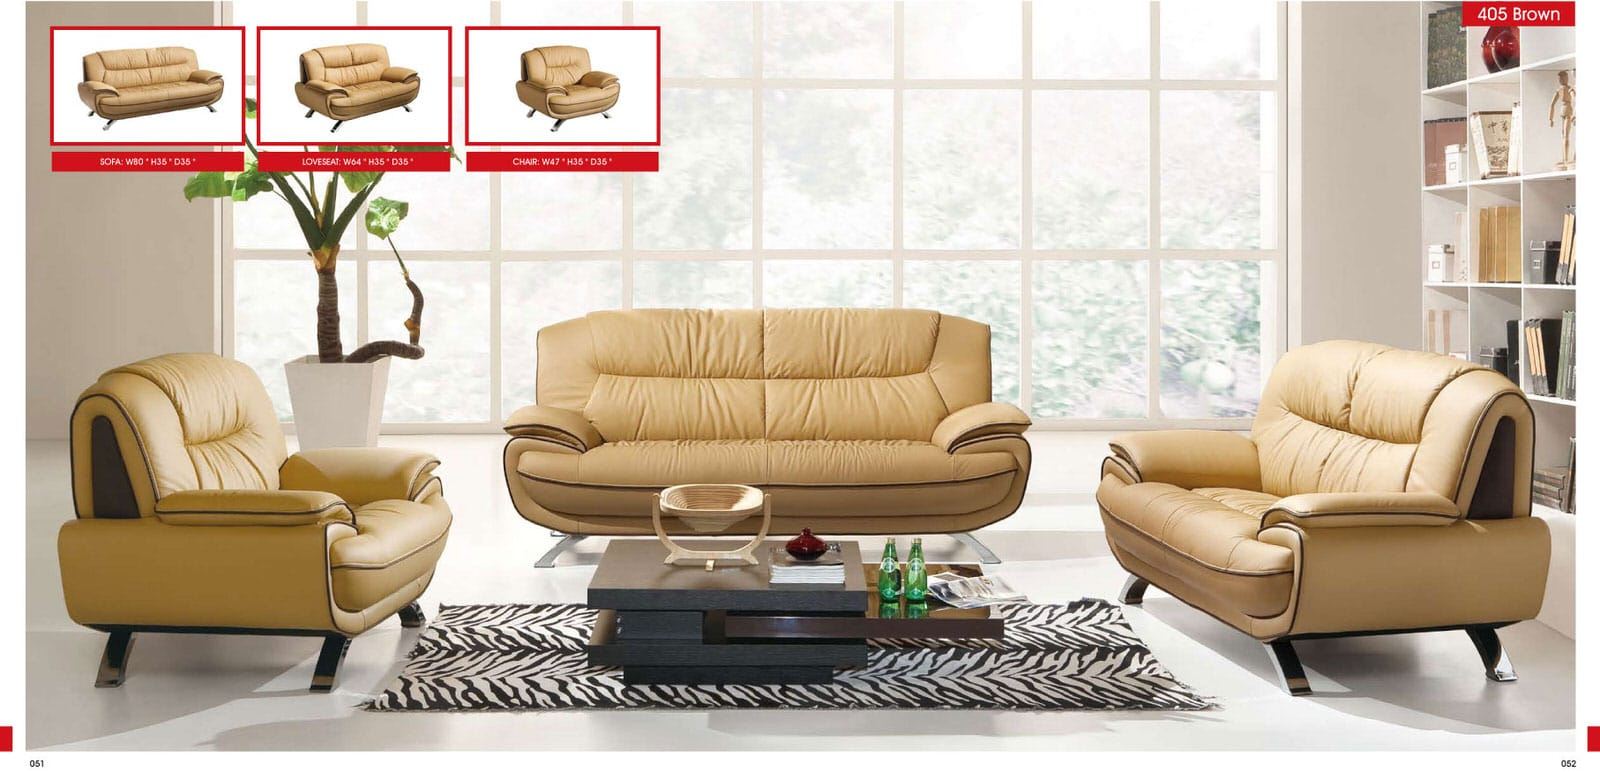 405 brown leather sofa set by esf for Contemporary furnishings